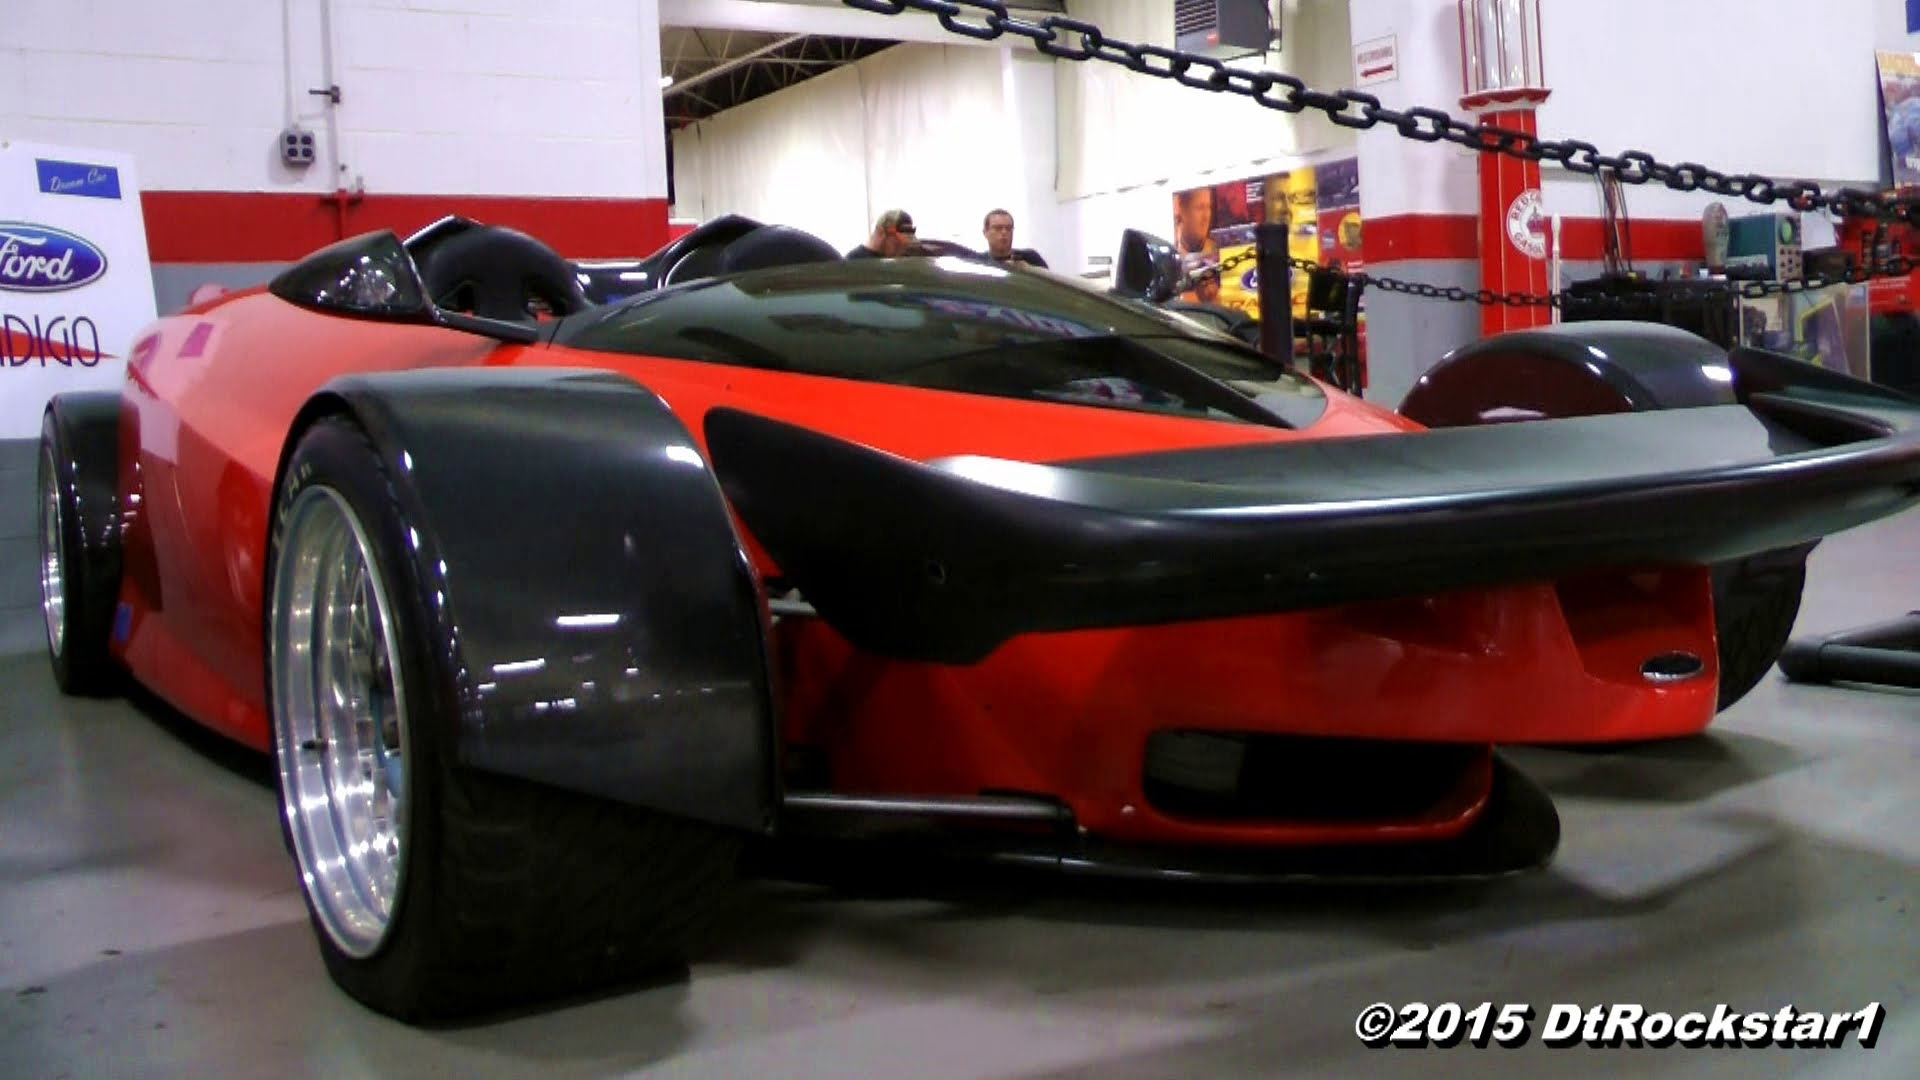 Very Rare Ford Indigo Concept Car Spotted Insanely Cool